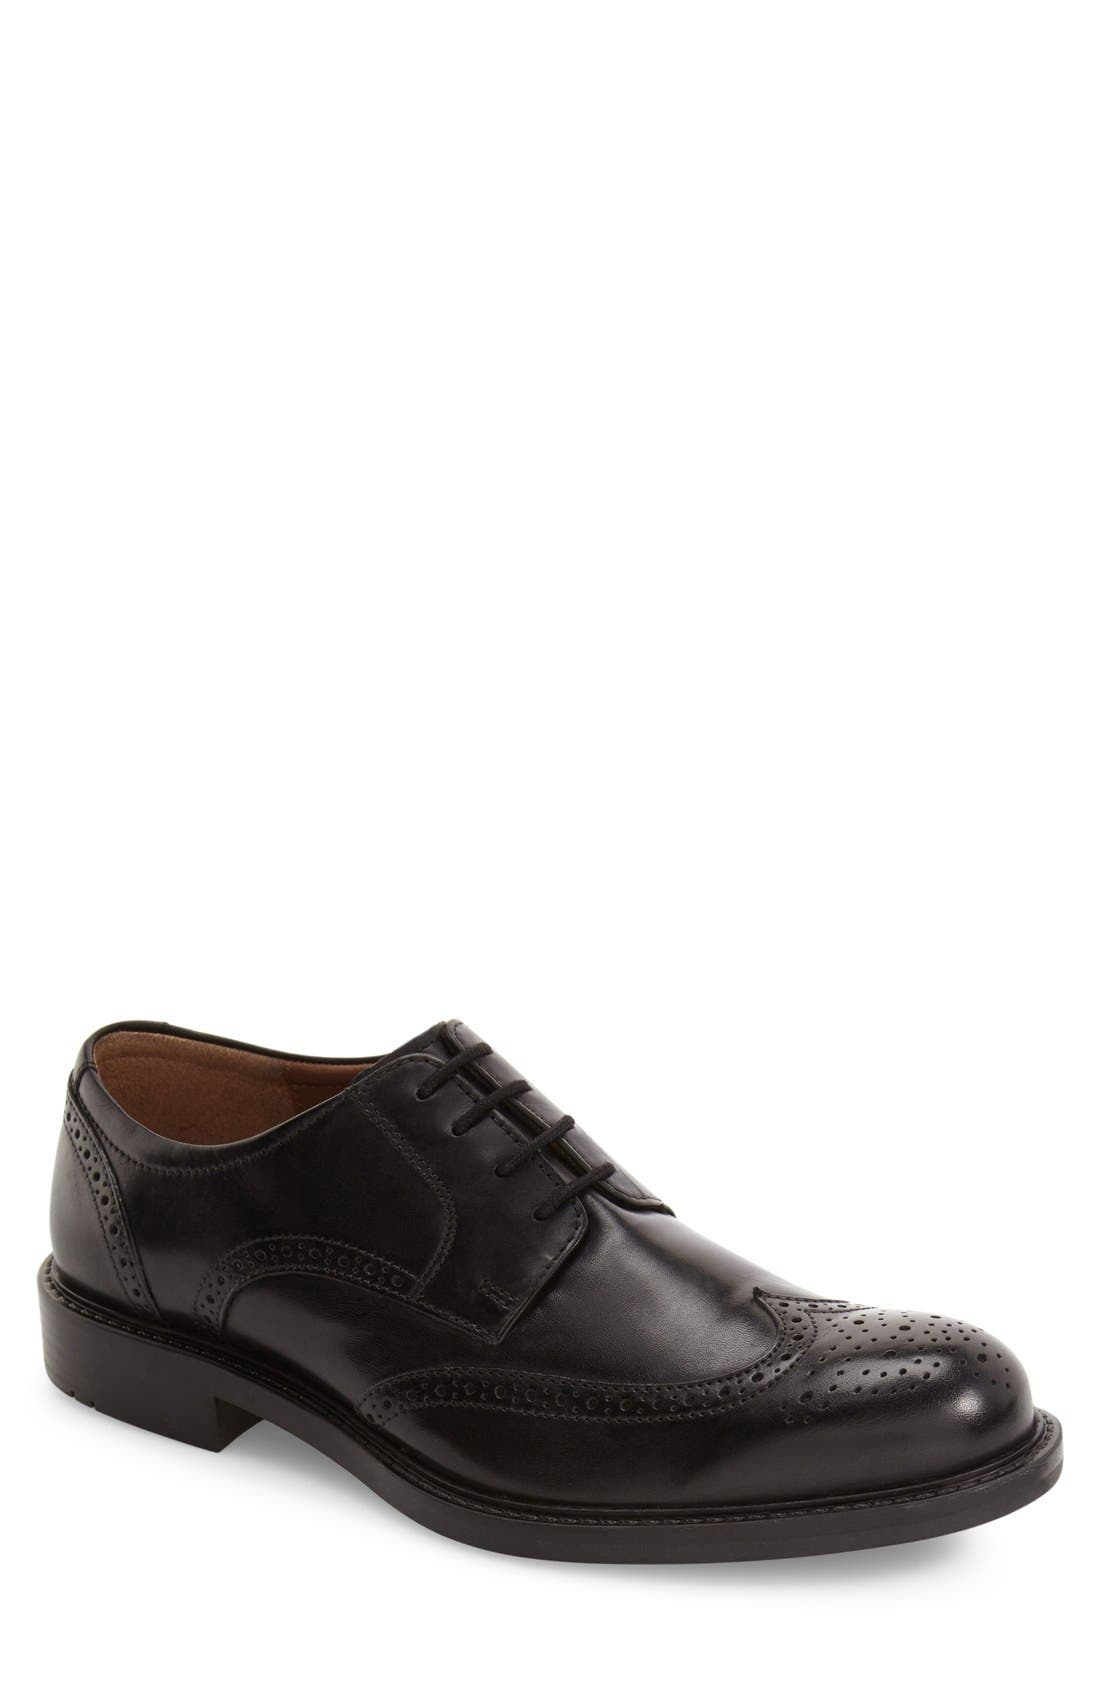 Tabor Wingtip,                         Main,                         color, BLACK LEATHER